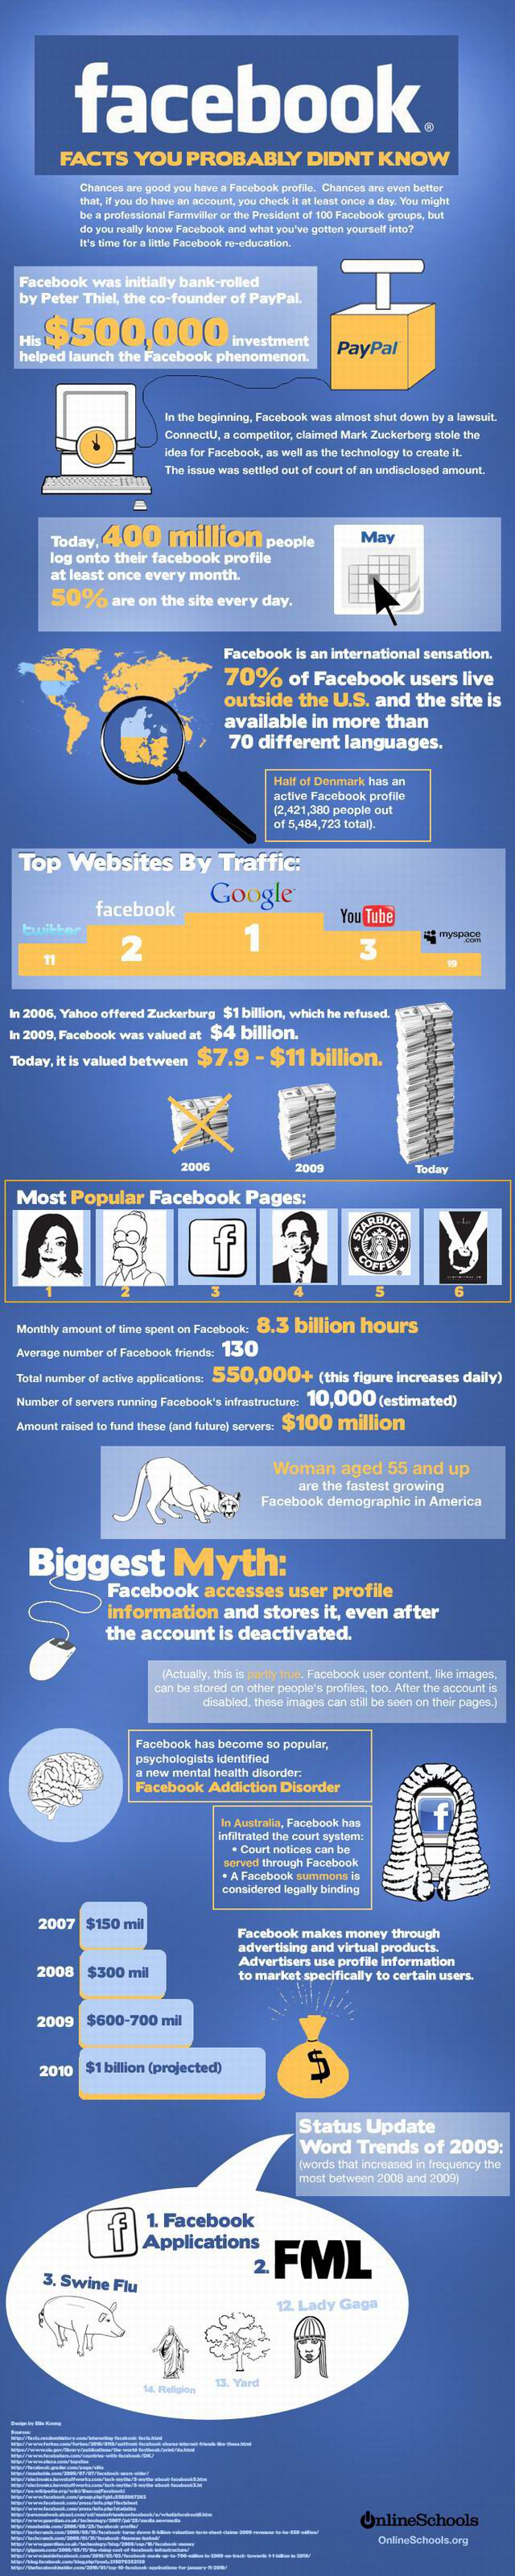 Everything about Facebook (1 pic)